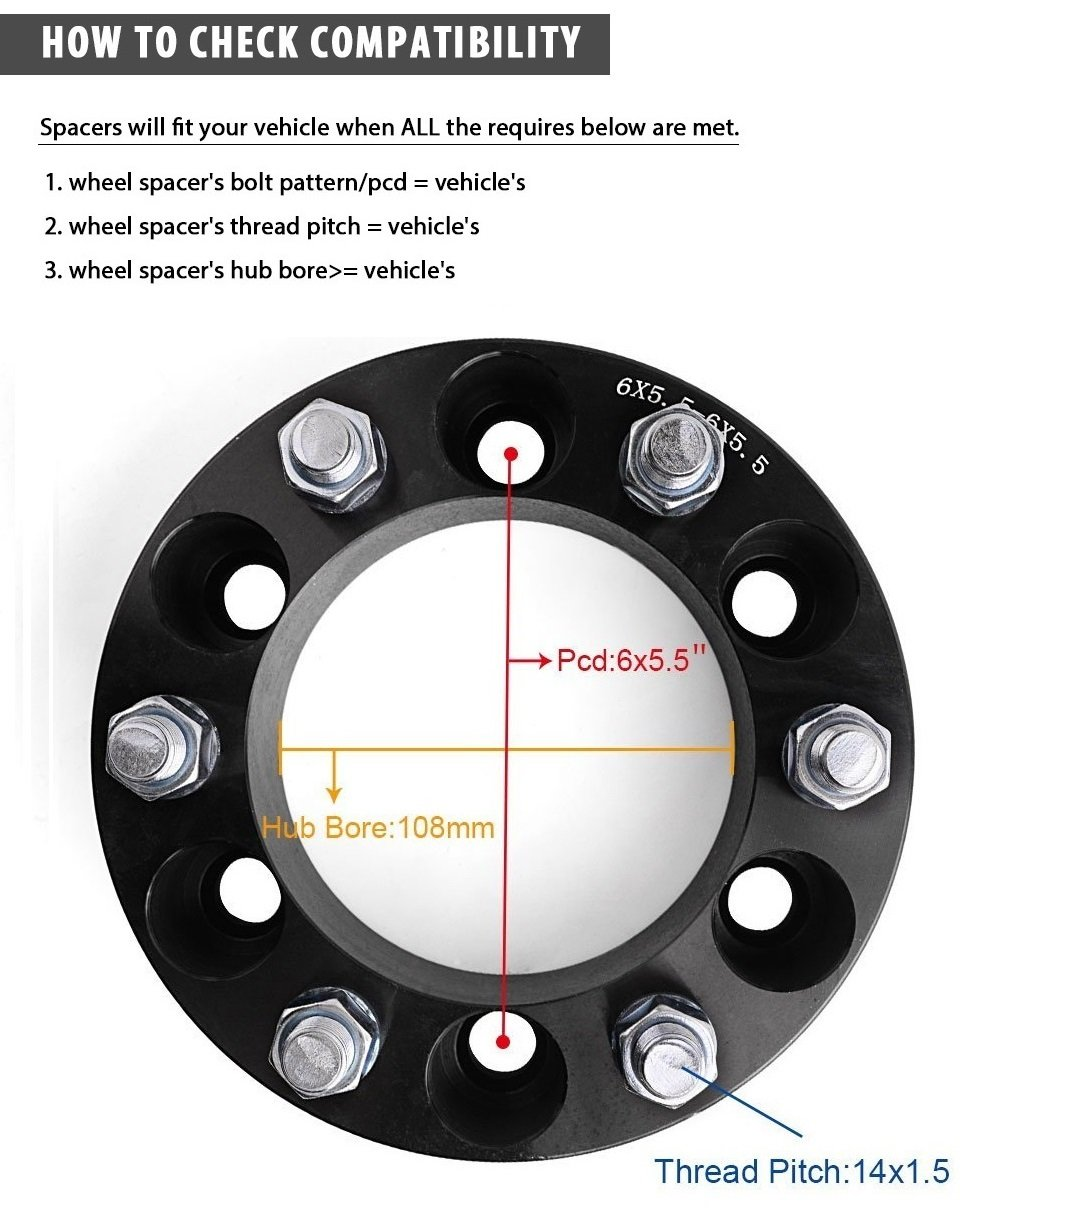 All Chevy 95 chevy 1500 bolt pattern : Amazon.com: Wheel Spacers, YITAMOTOR 4pcs 6 Lug Wheel Spacers 6x5 ...